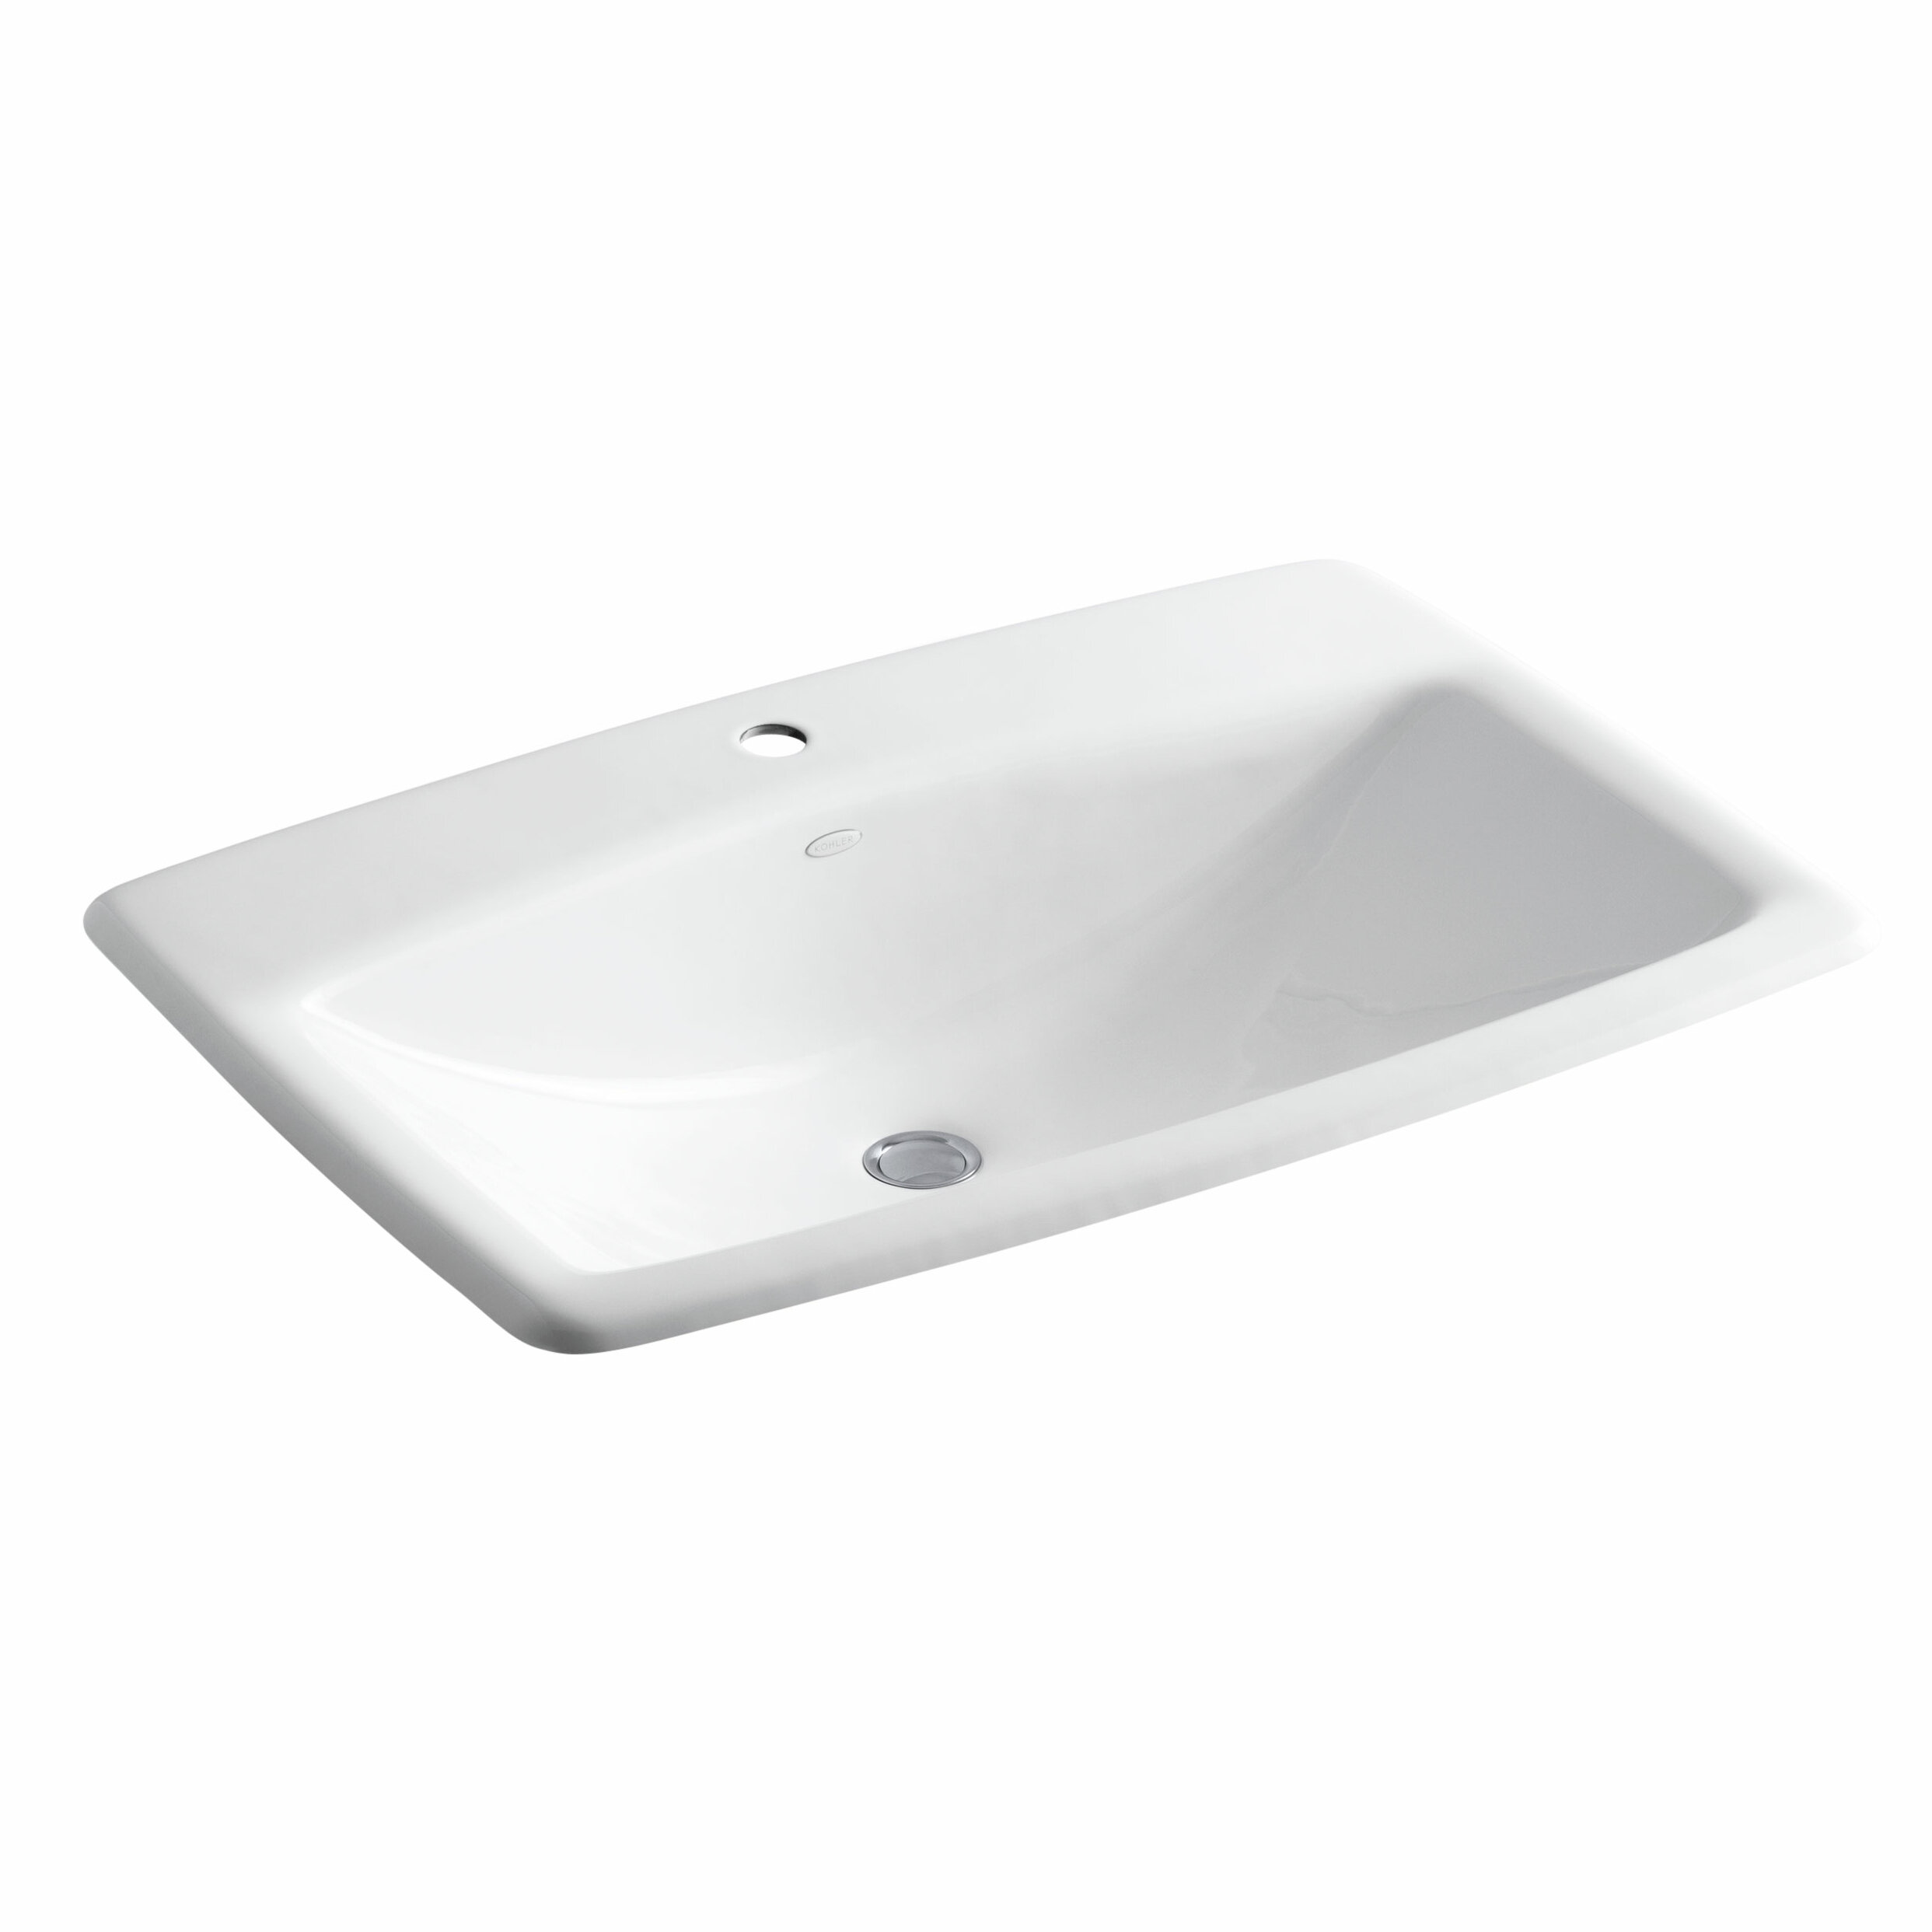 K 2885 1 0 mans lav metal rectangular drop in bathroom sink with overflow